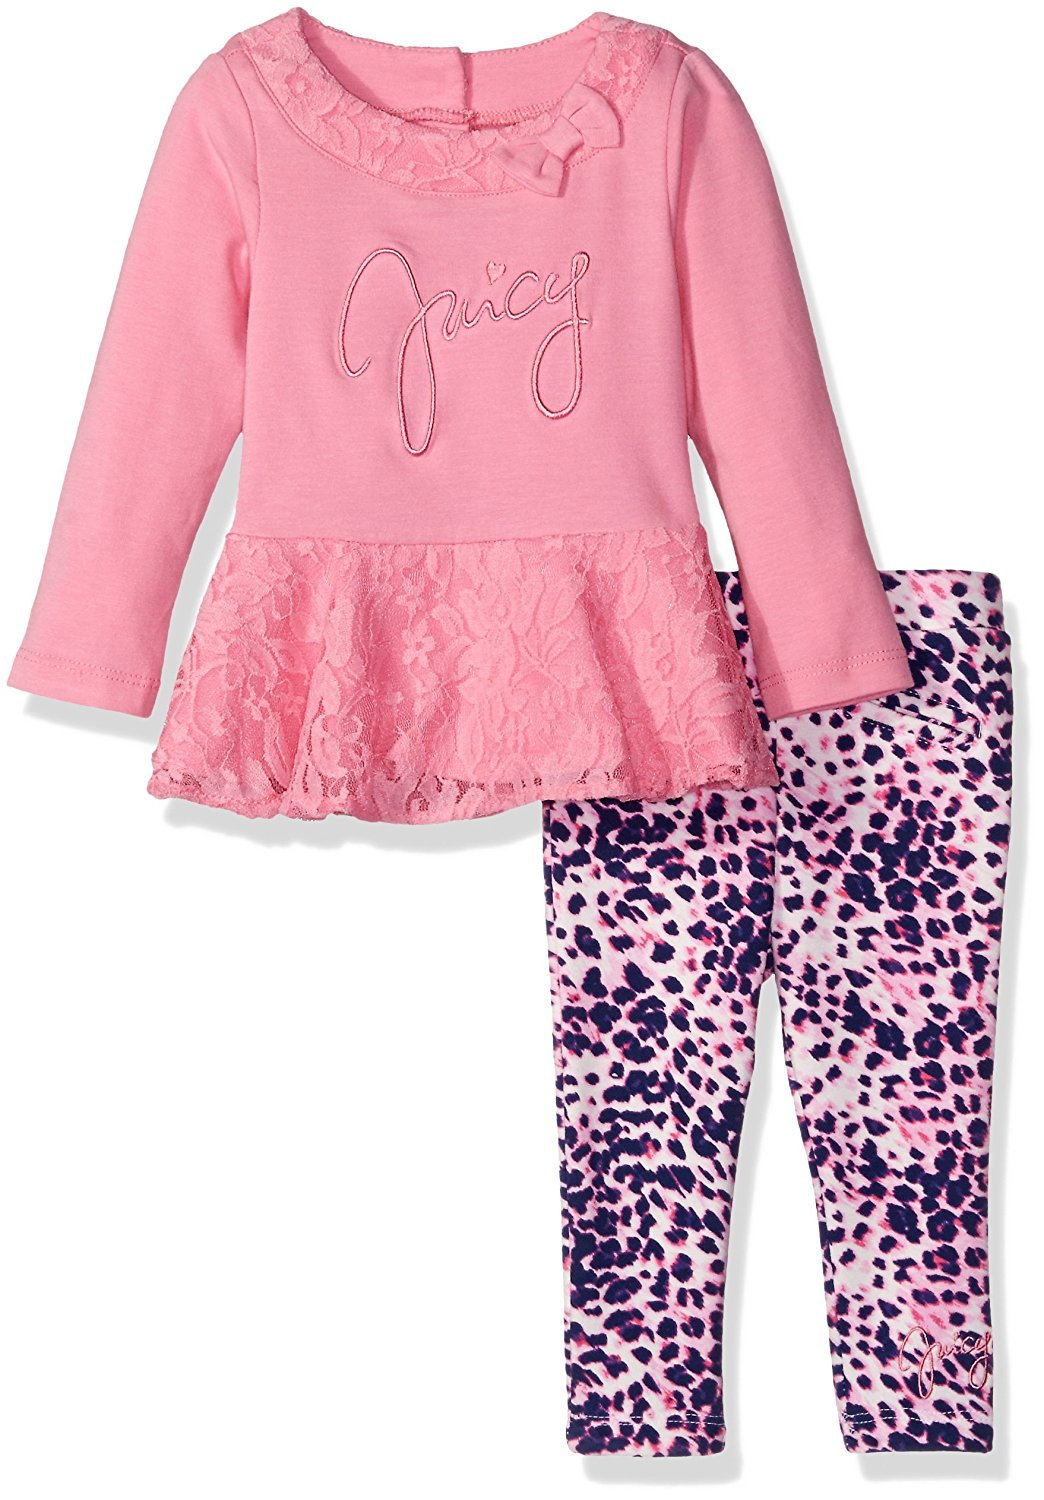 Juicy Couture Little Girls Pink Laced Tunic 2pc Legging Set (6)